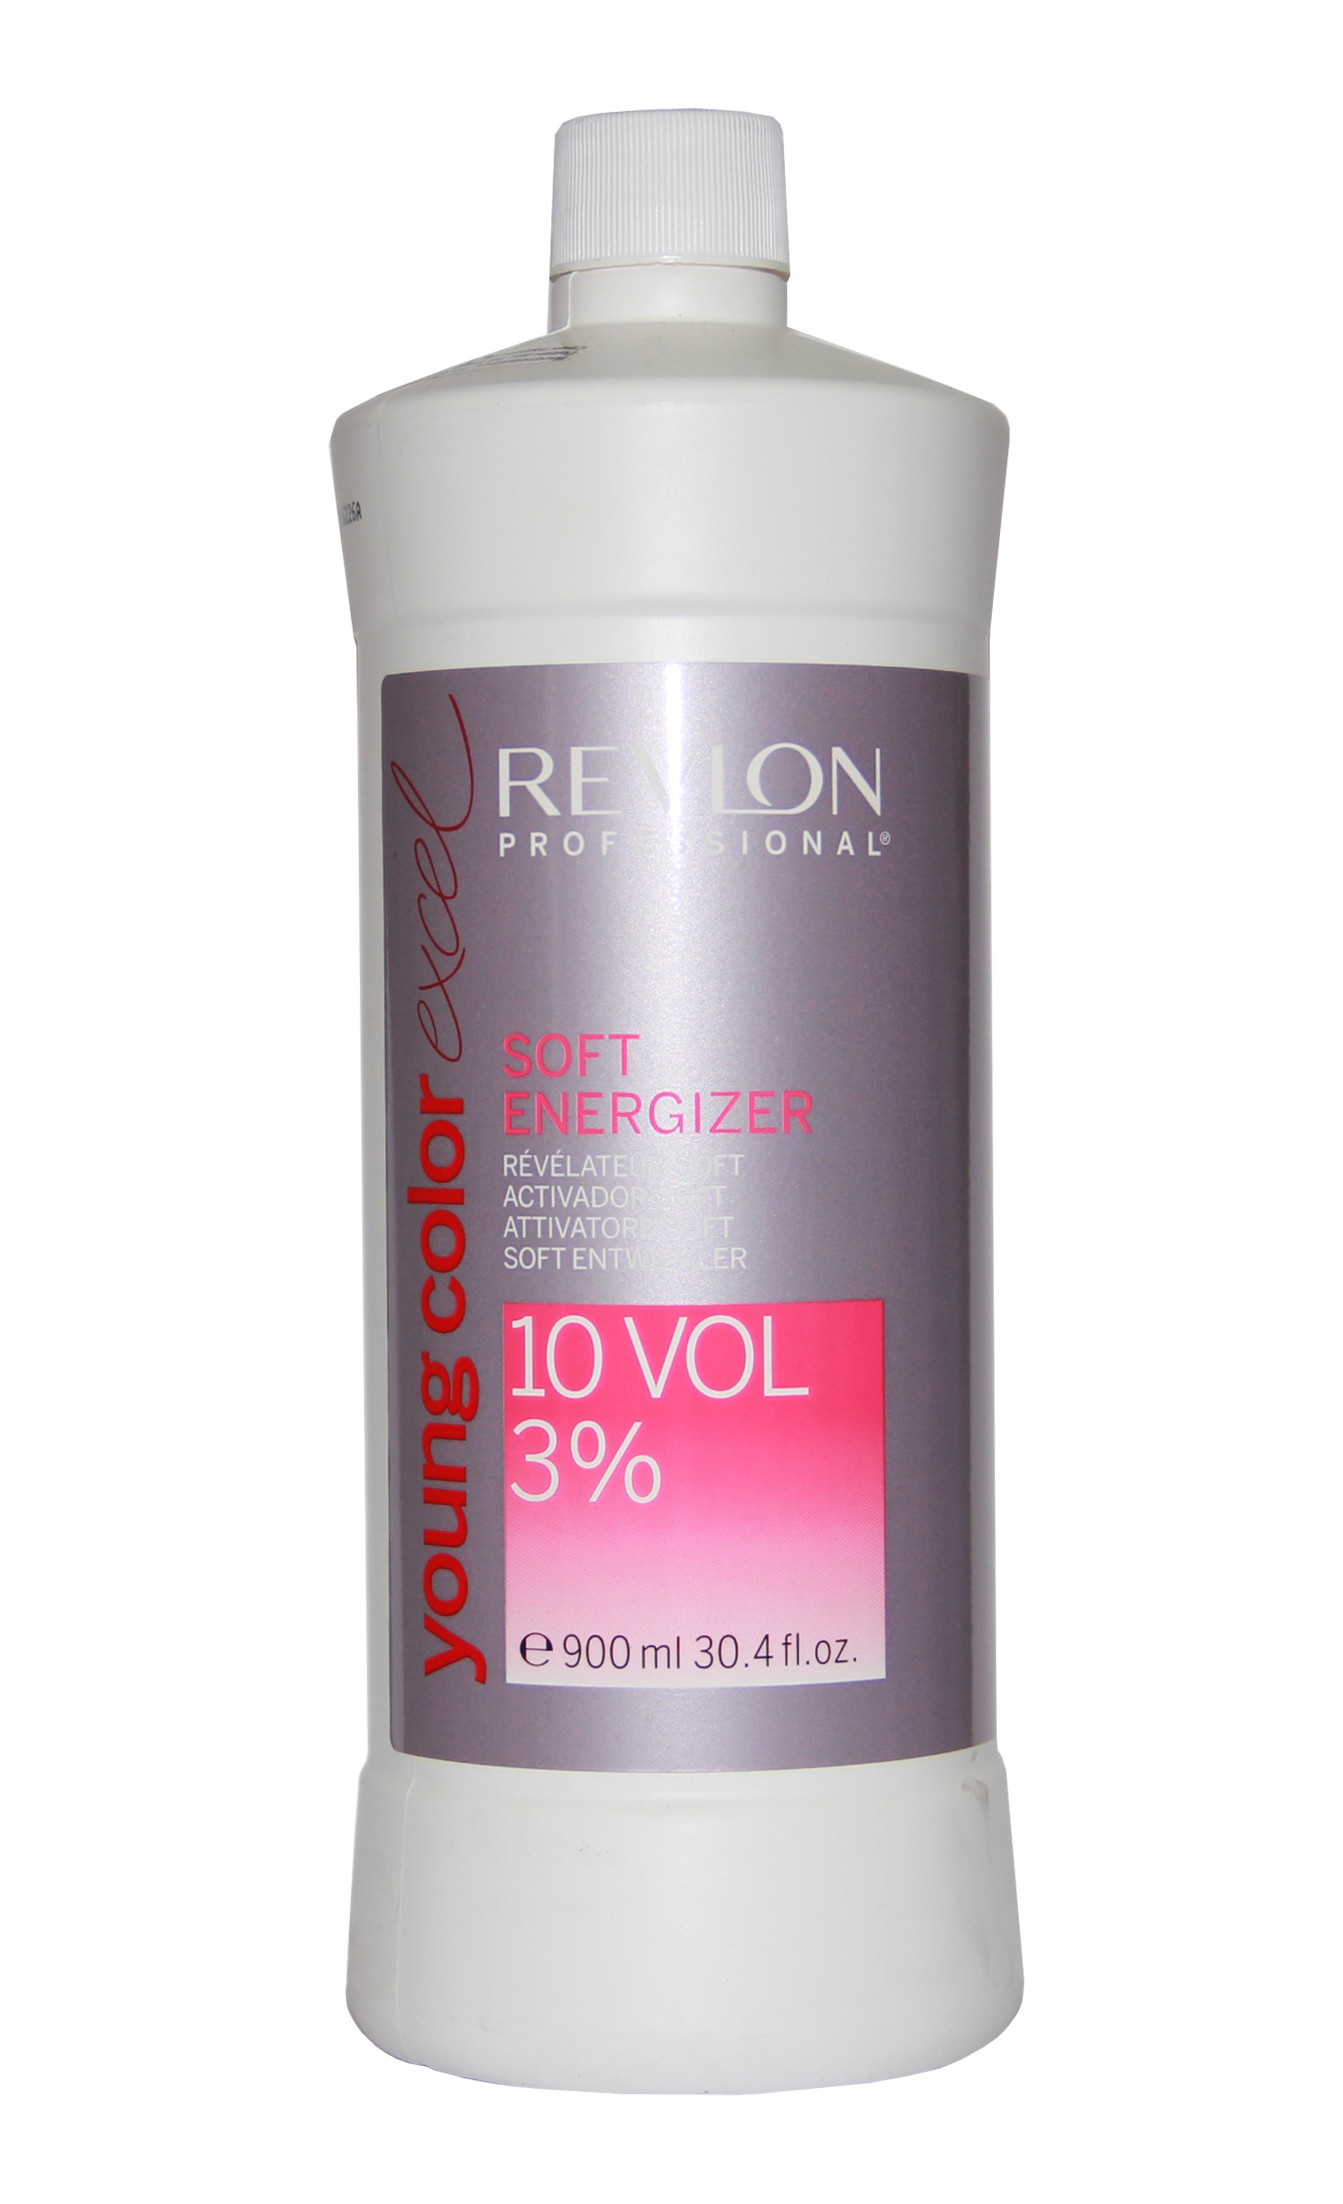 Revlon professional биоактиватор софт 3% / young color